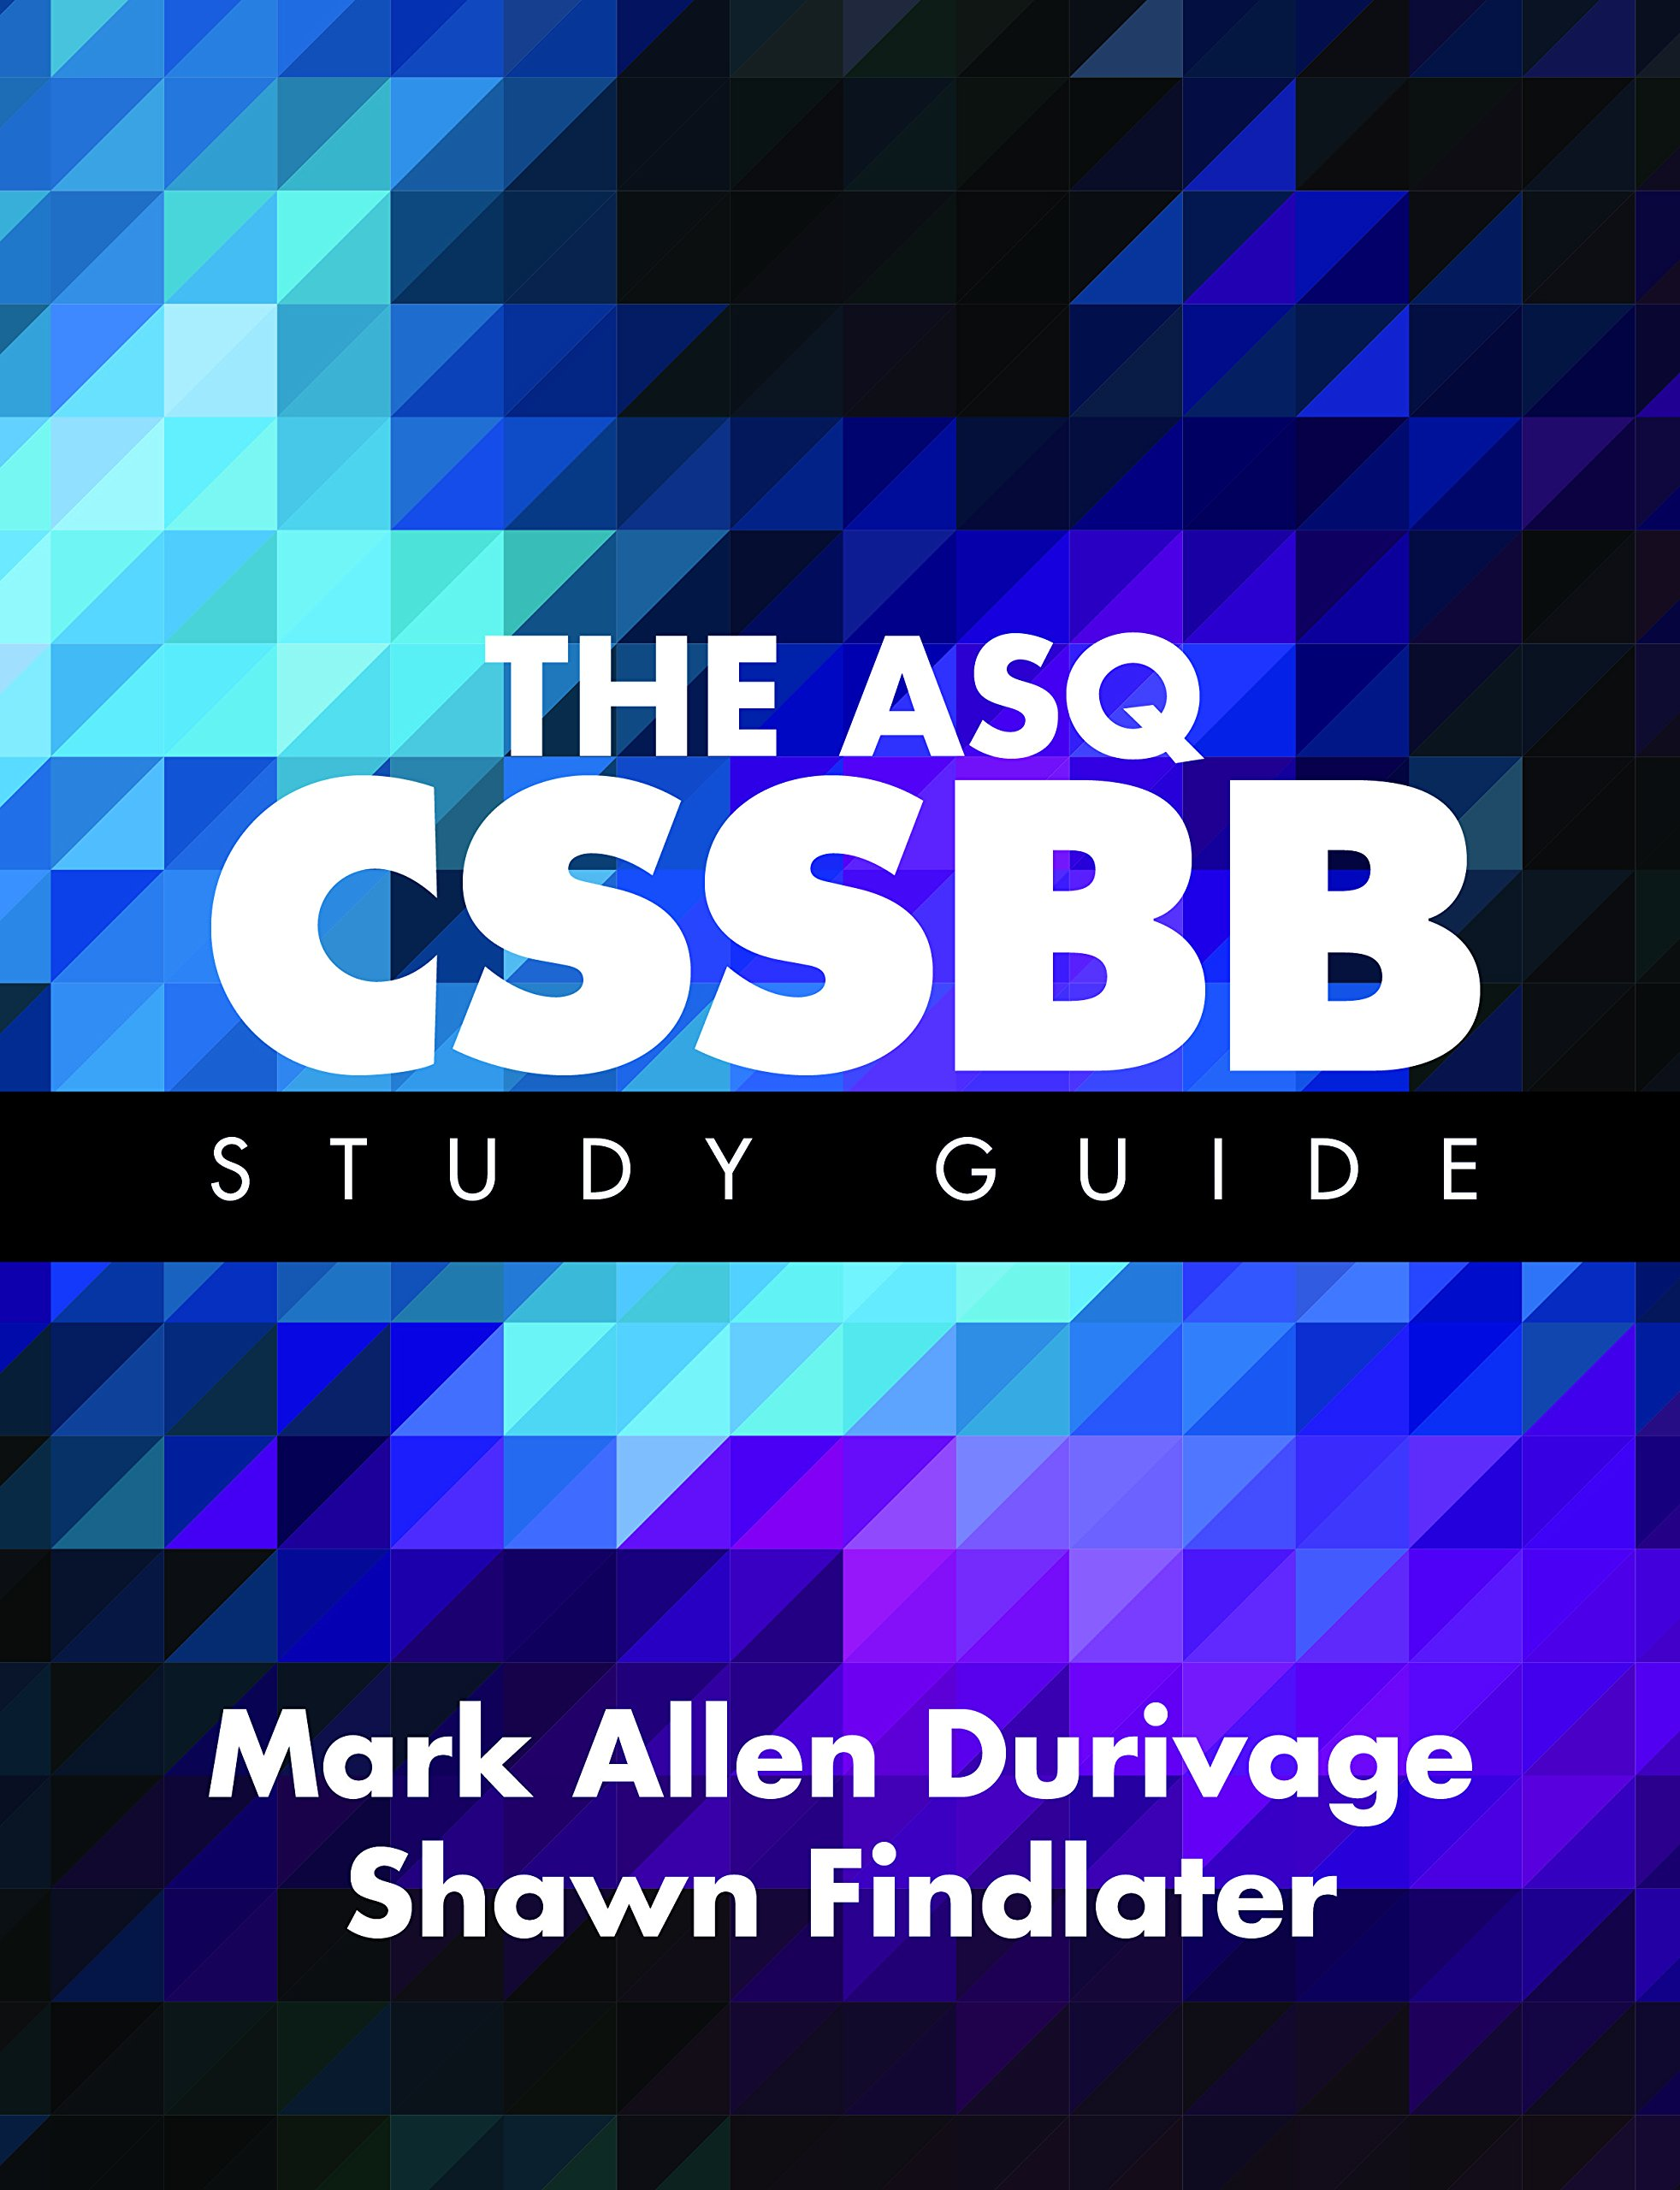 The Asq Cssbb Study Guide Mark Allen Durivage Shawn Findlater